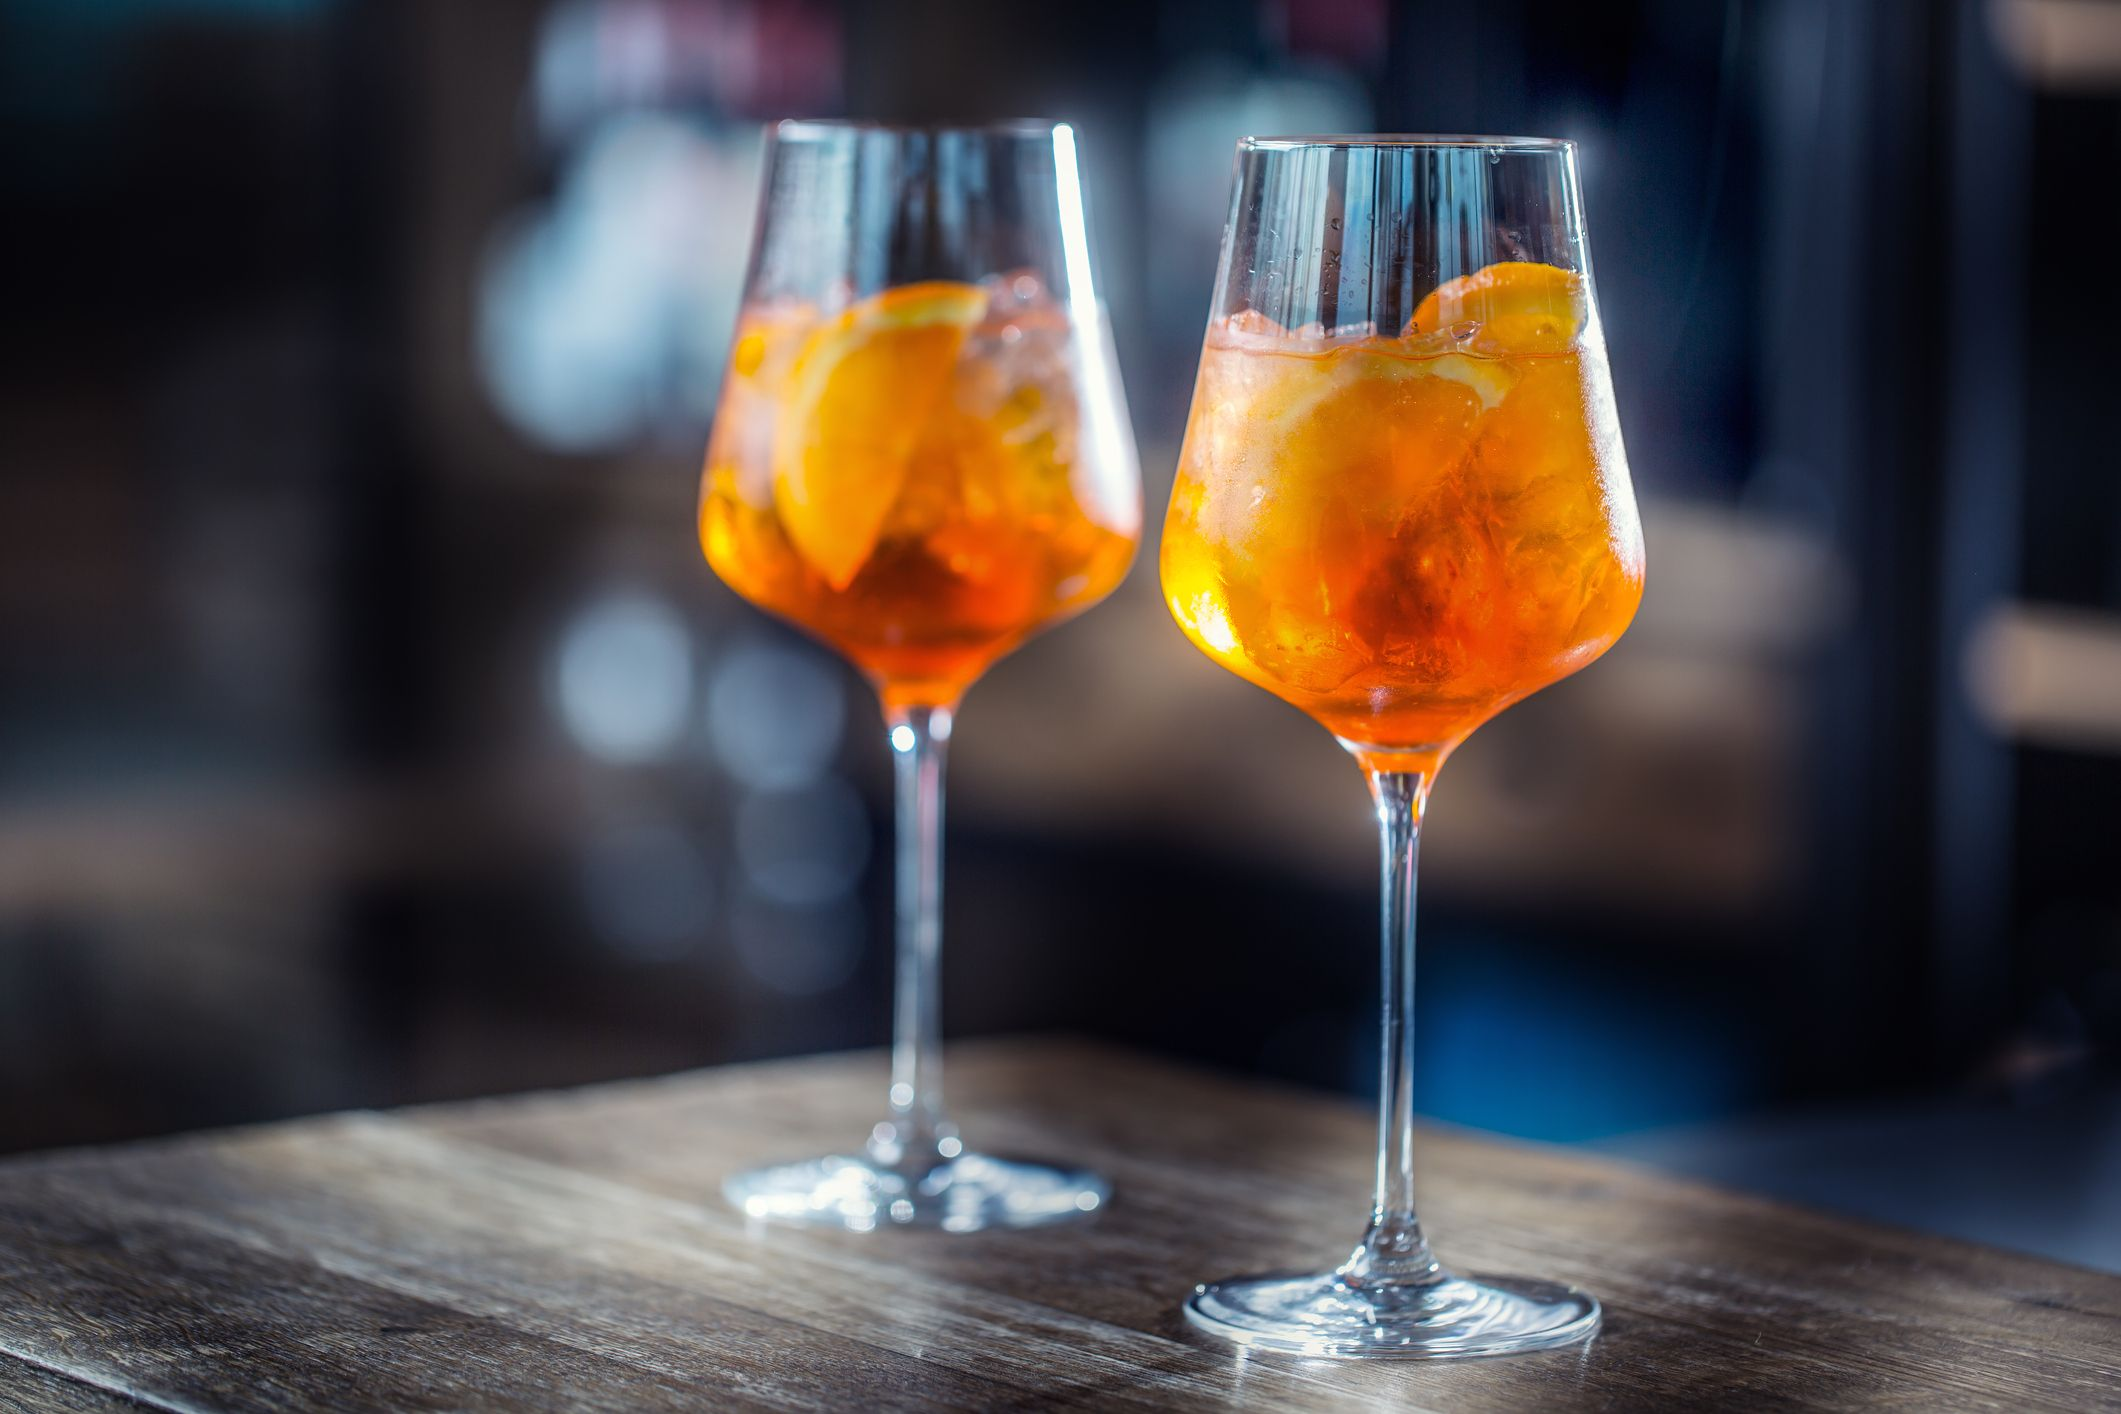 The History of the Aperol Spritz